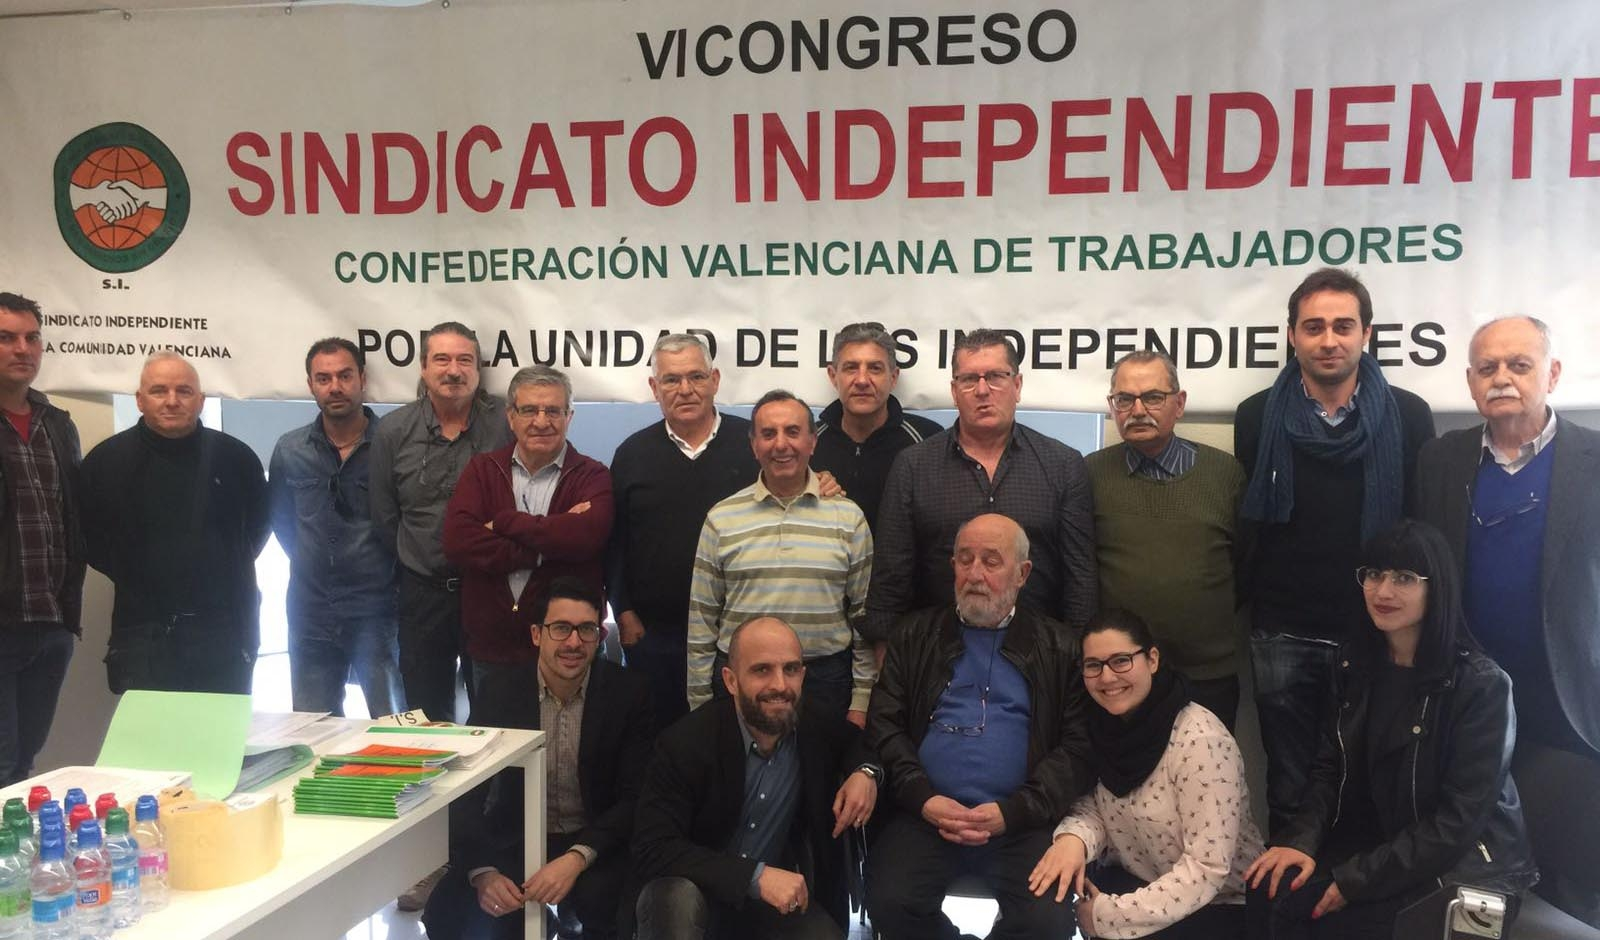 VI Congreso del Sindicato Independiente